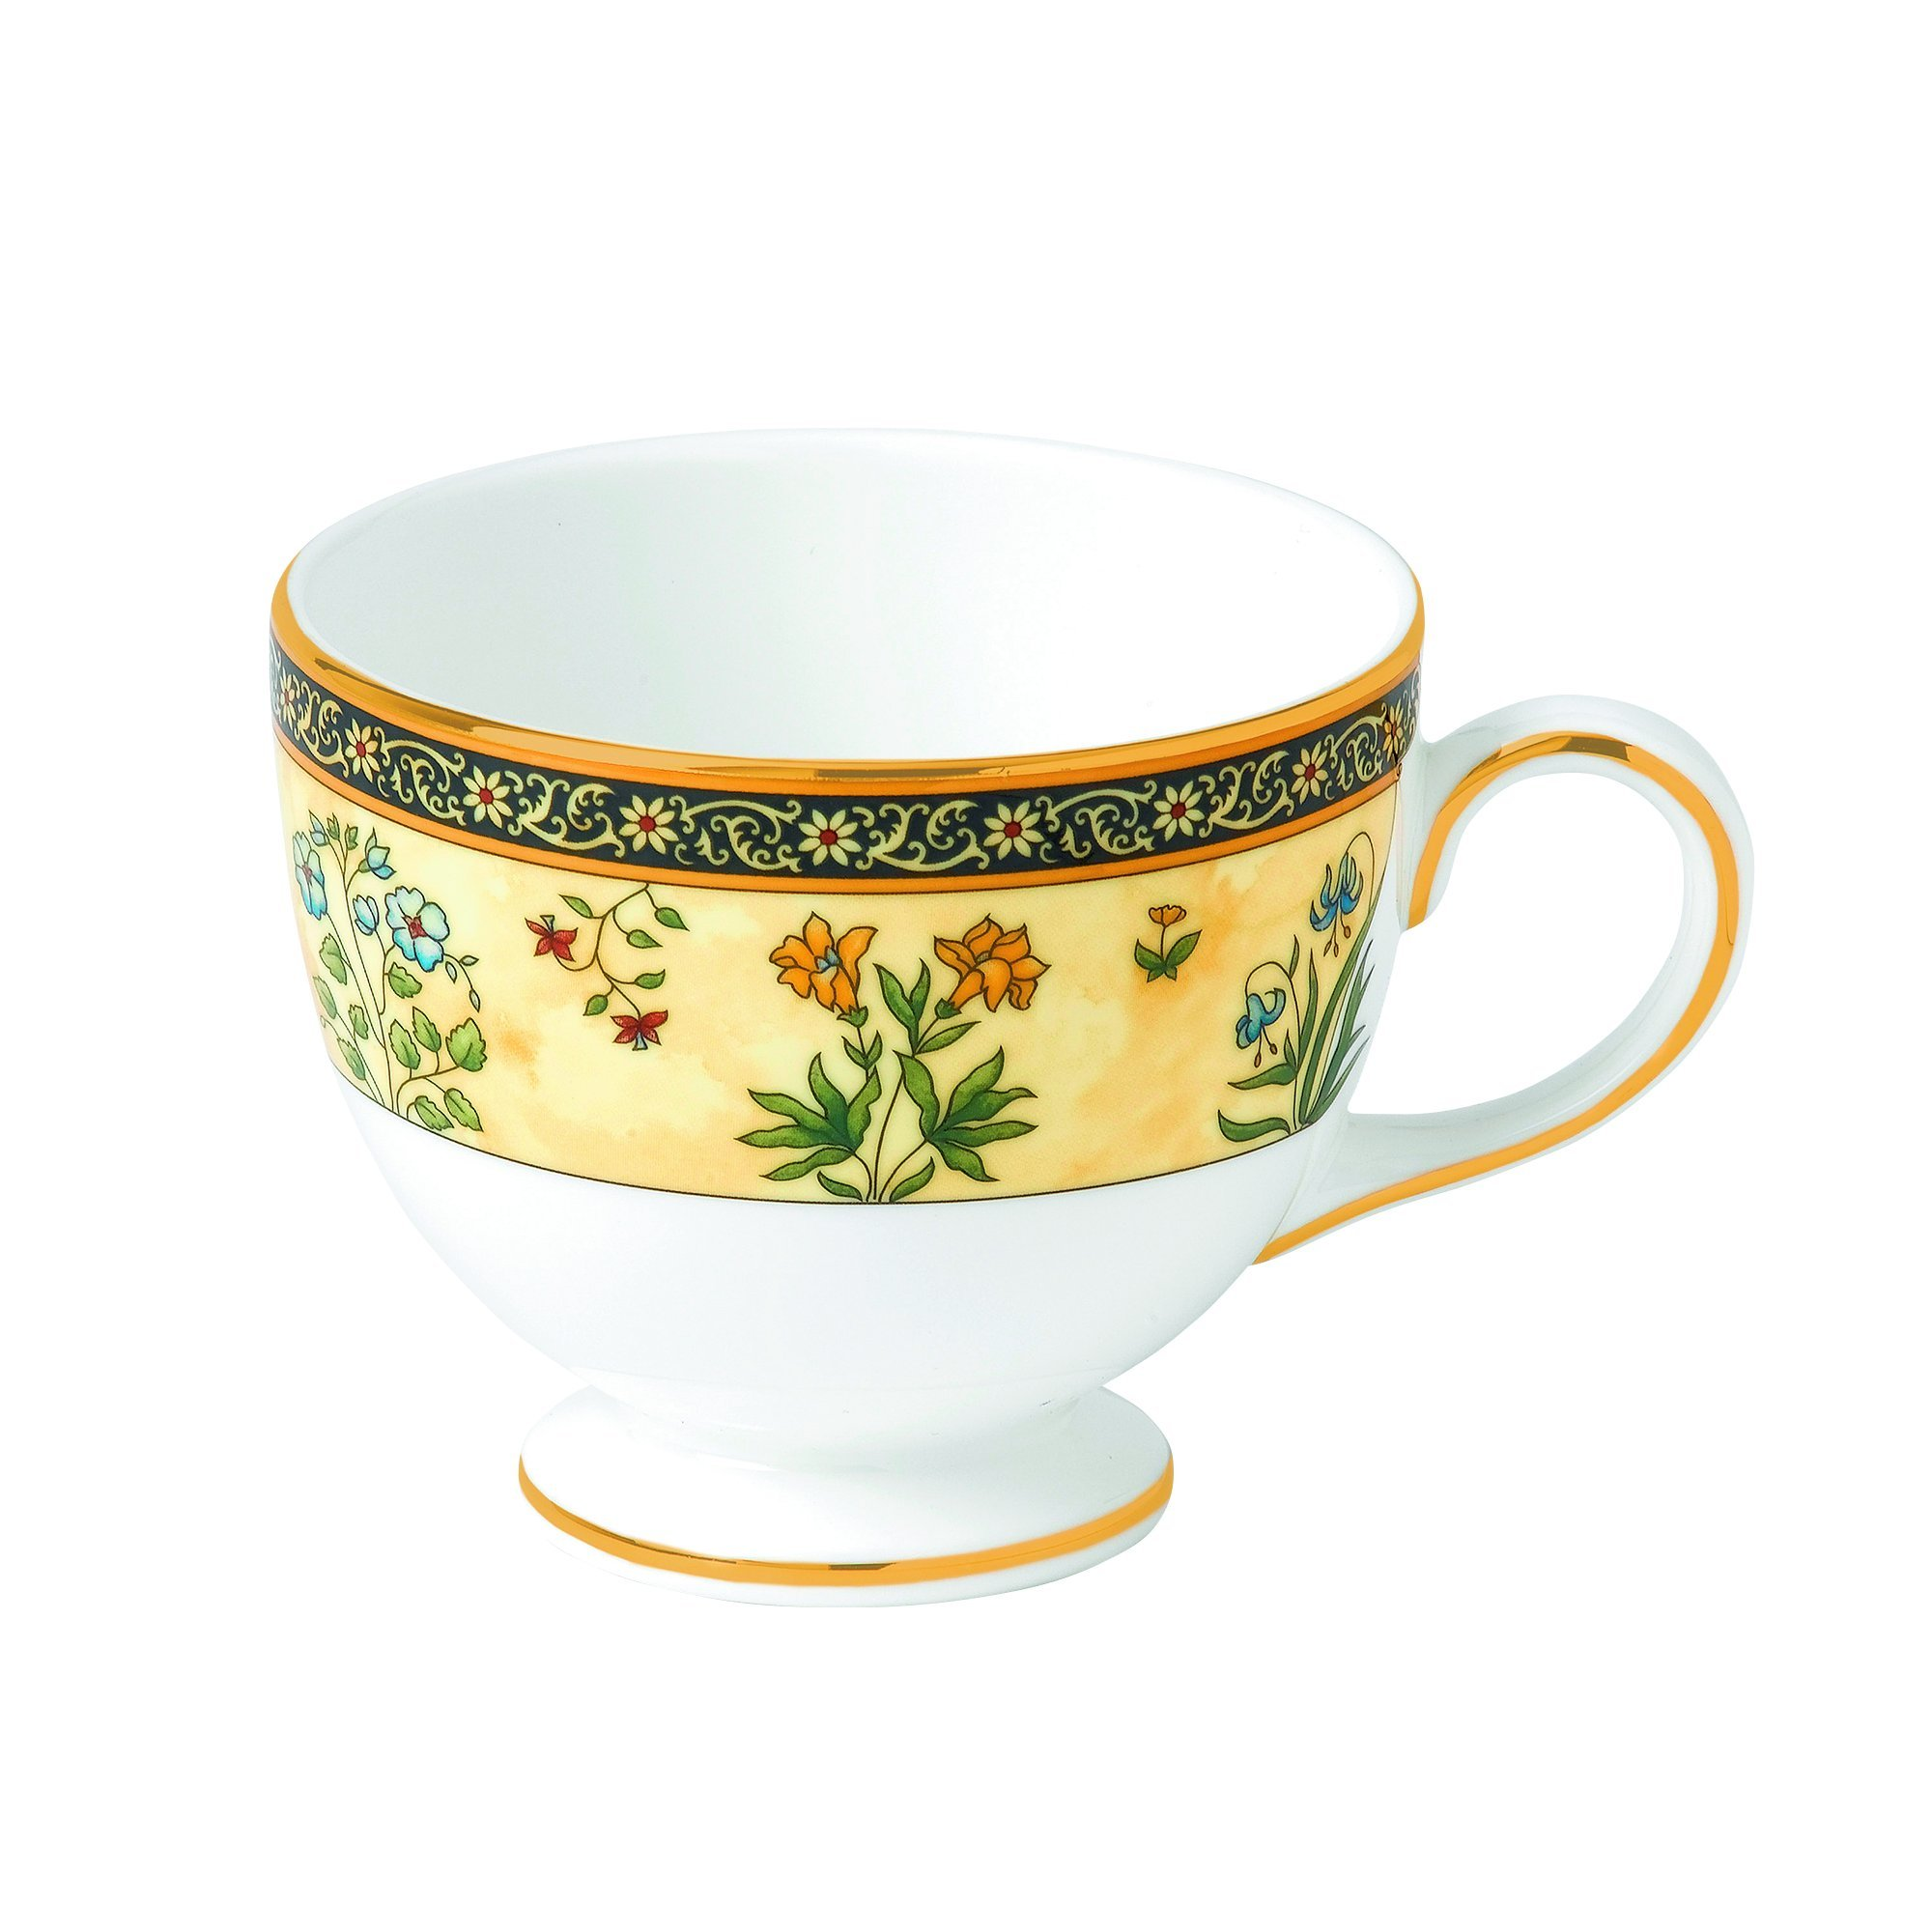 Wedgwood India Teacup, 5 oz, Multicolor